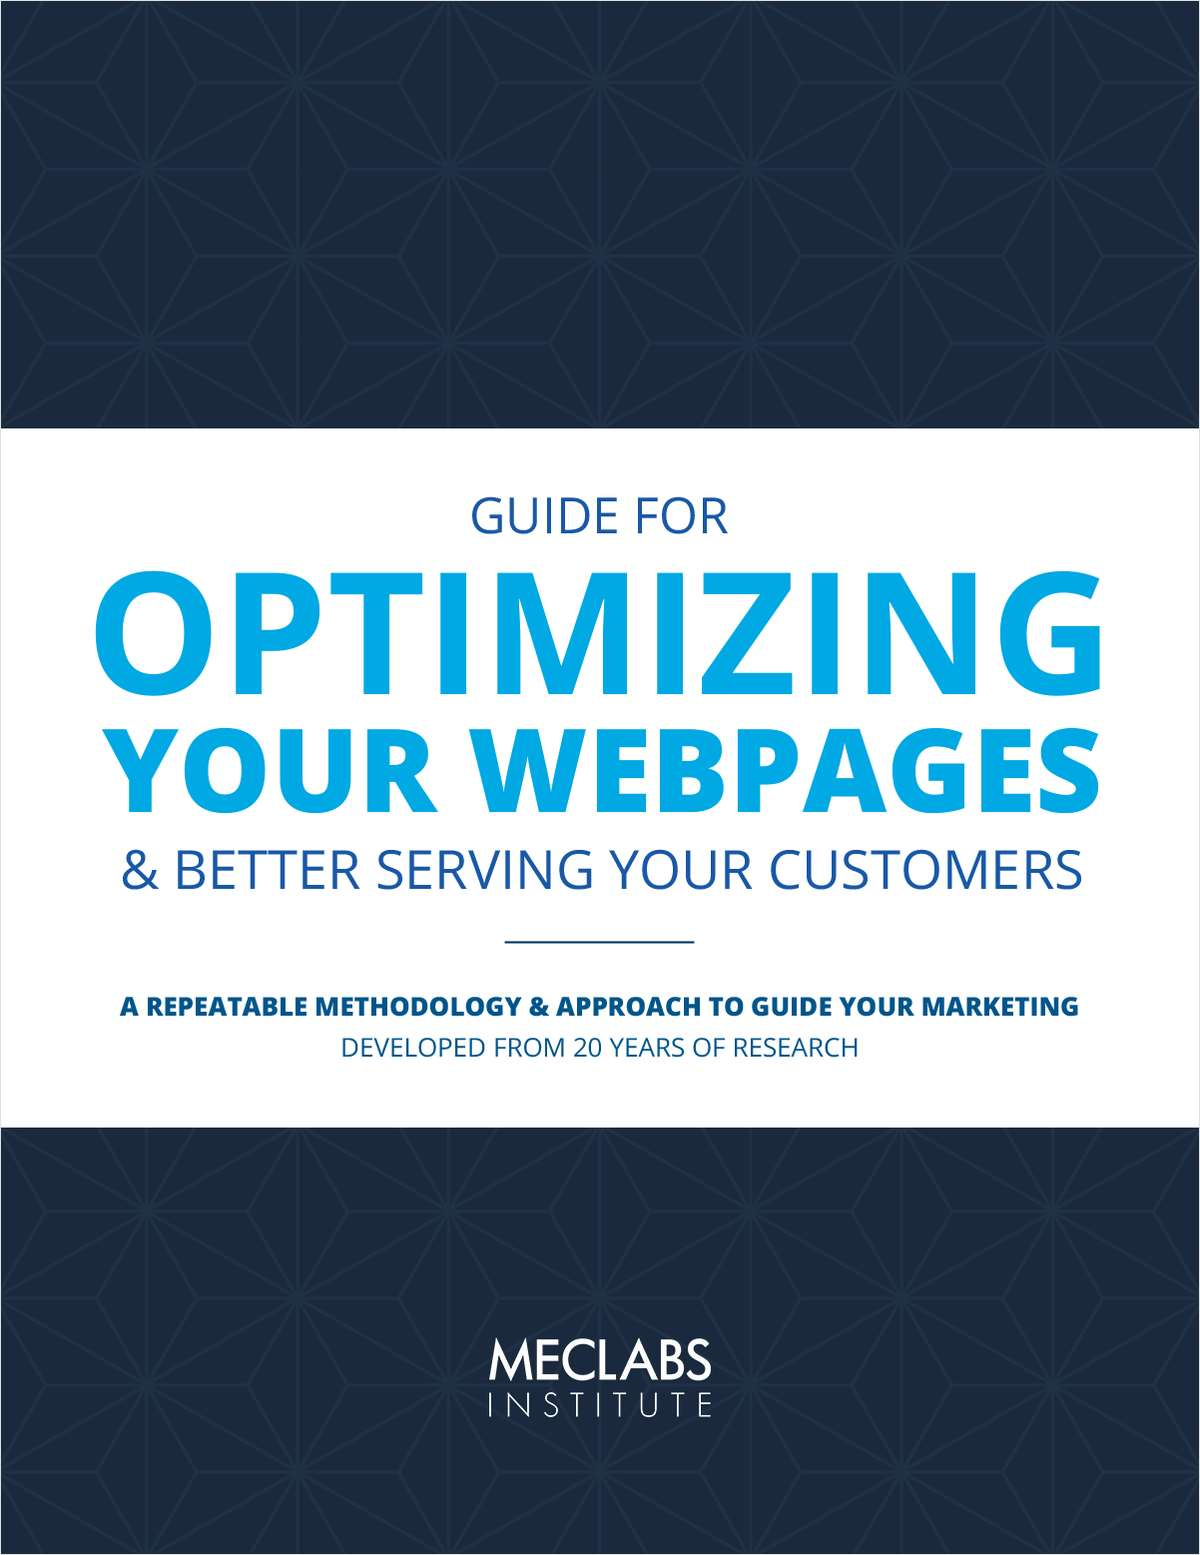 A Guide for Optimizing Your Webpages and Better Serving Your Customers